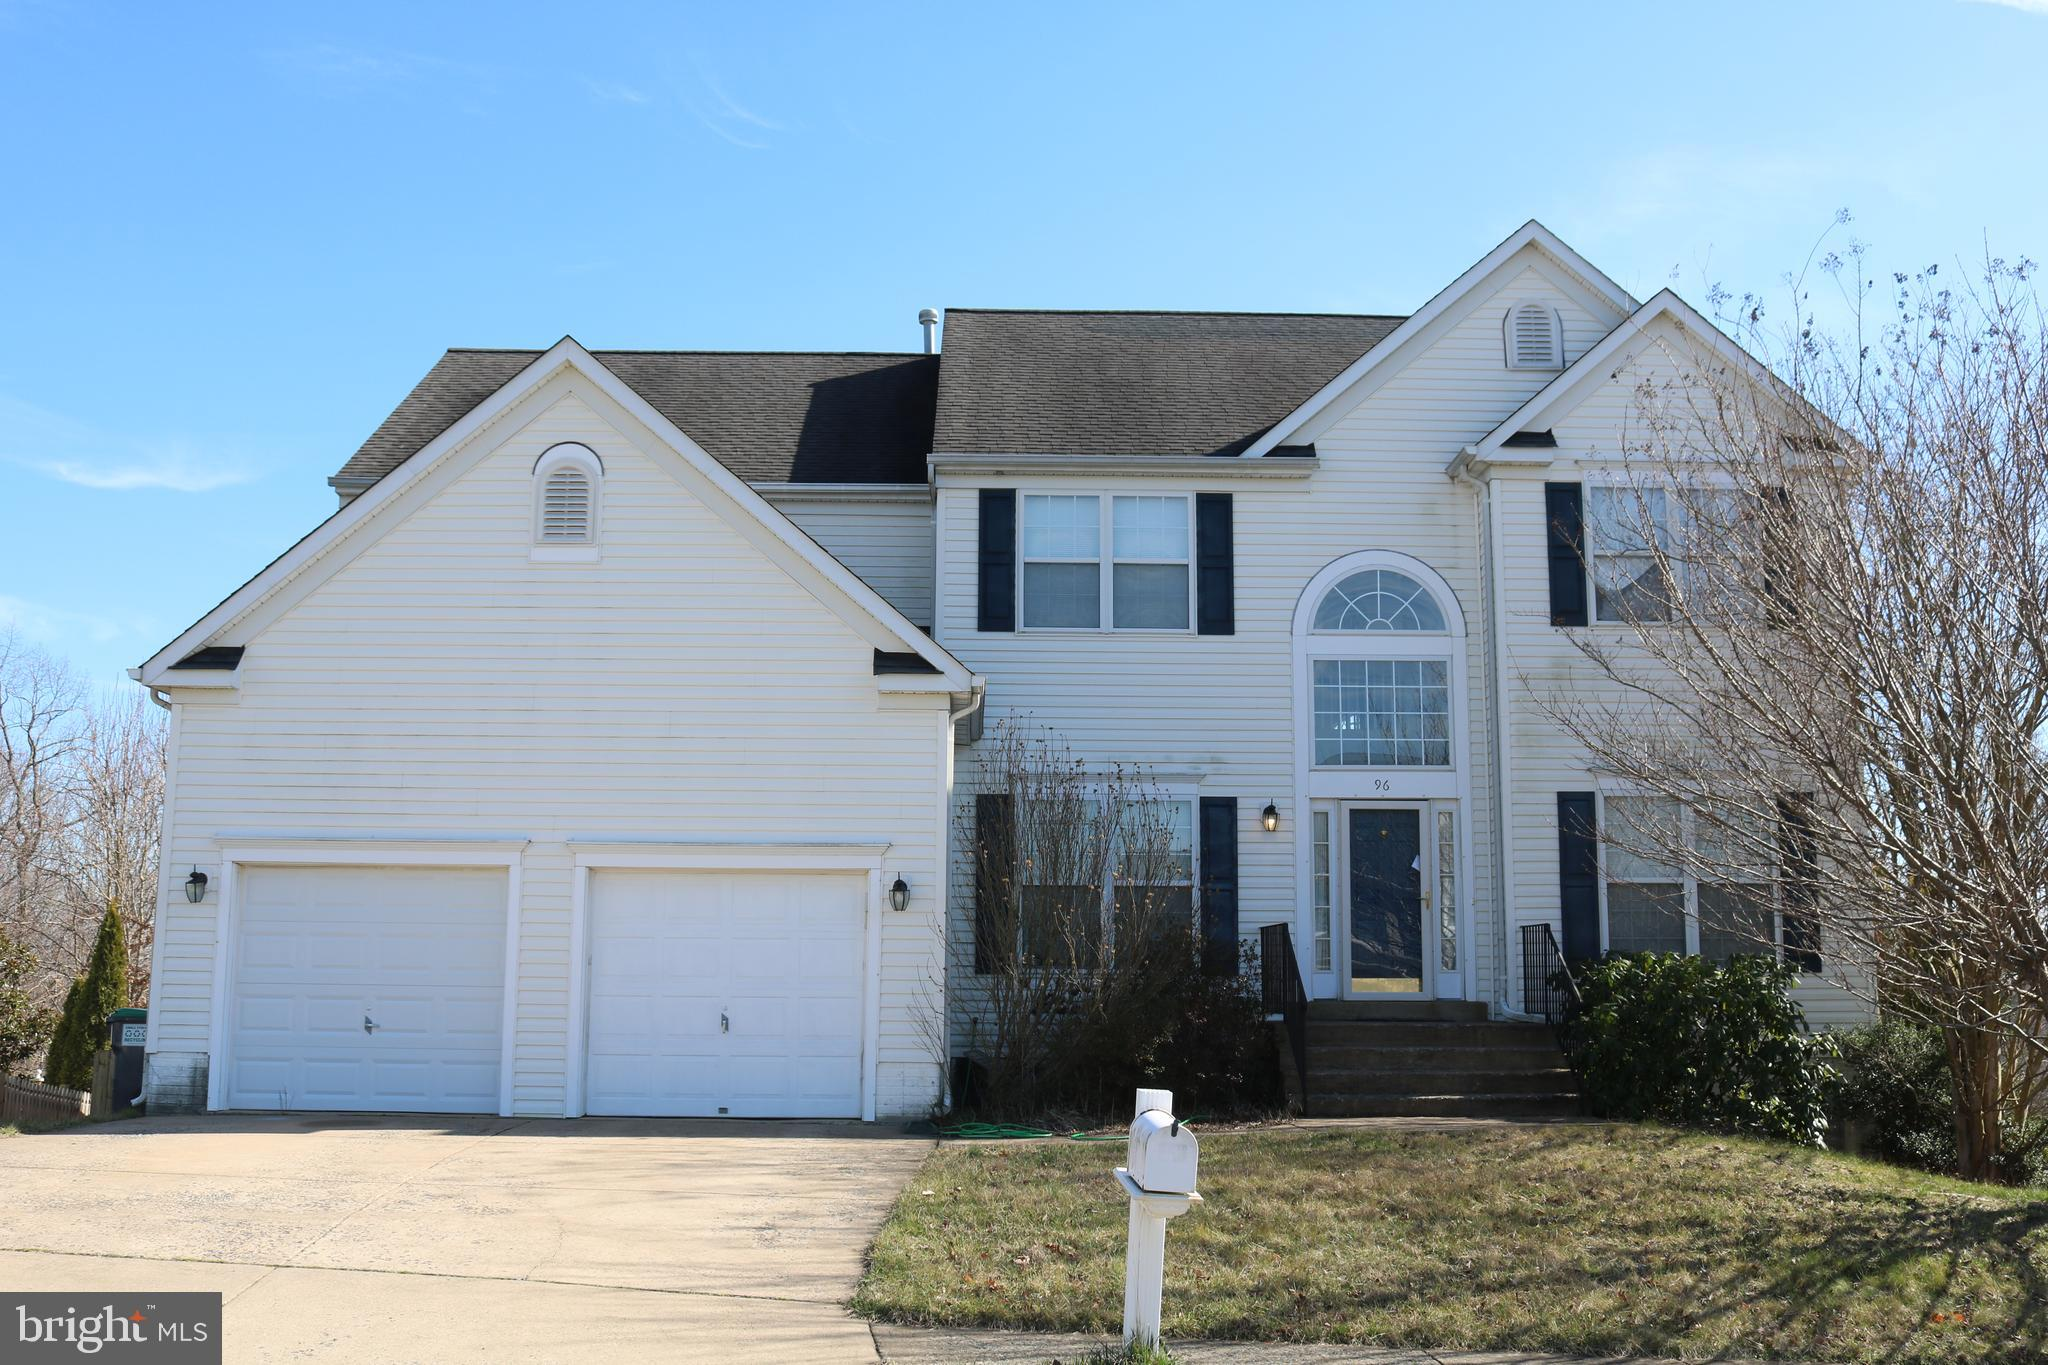 Lot of room to grow into this spacious 5 bedroom 3.5 bath home! Spend time in the light and bright f